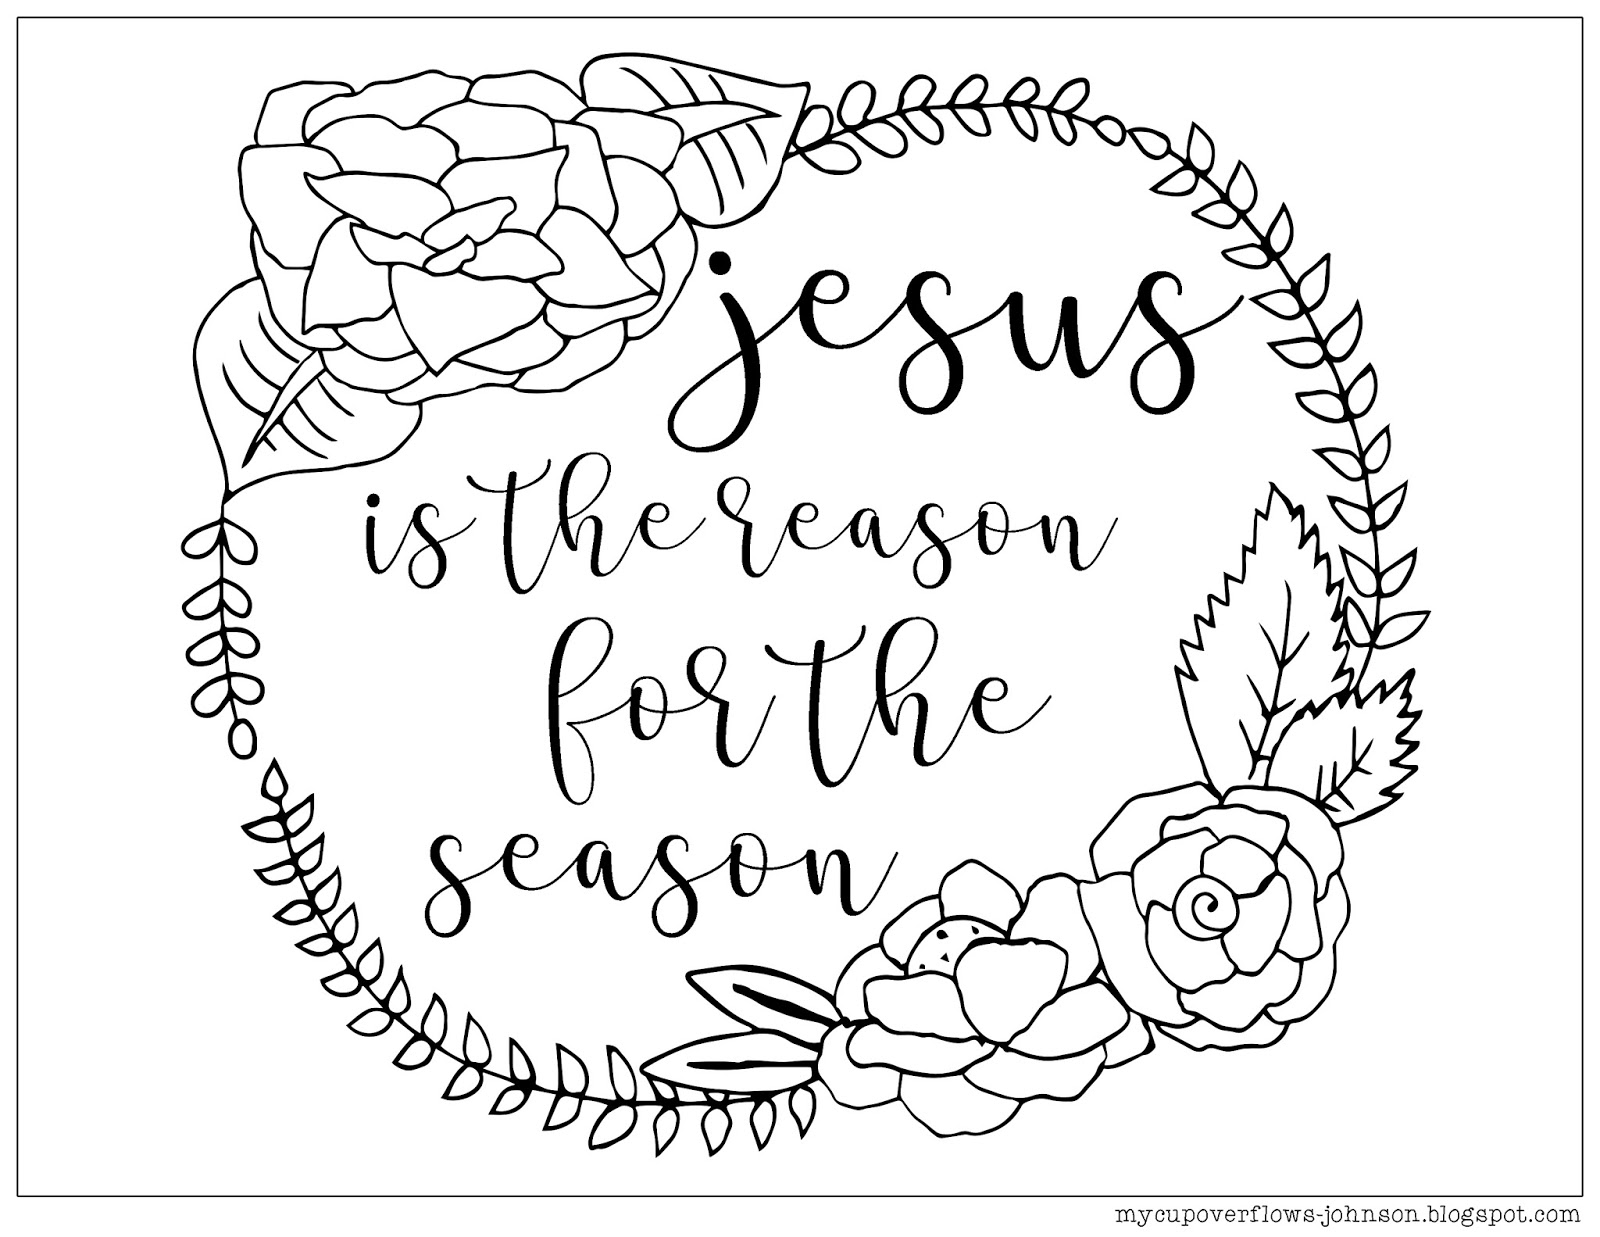 My cup overflows christmas coloring pages for Jesus is the reason for the season coloring pages